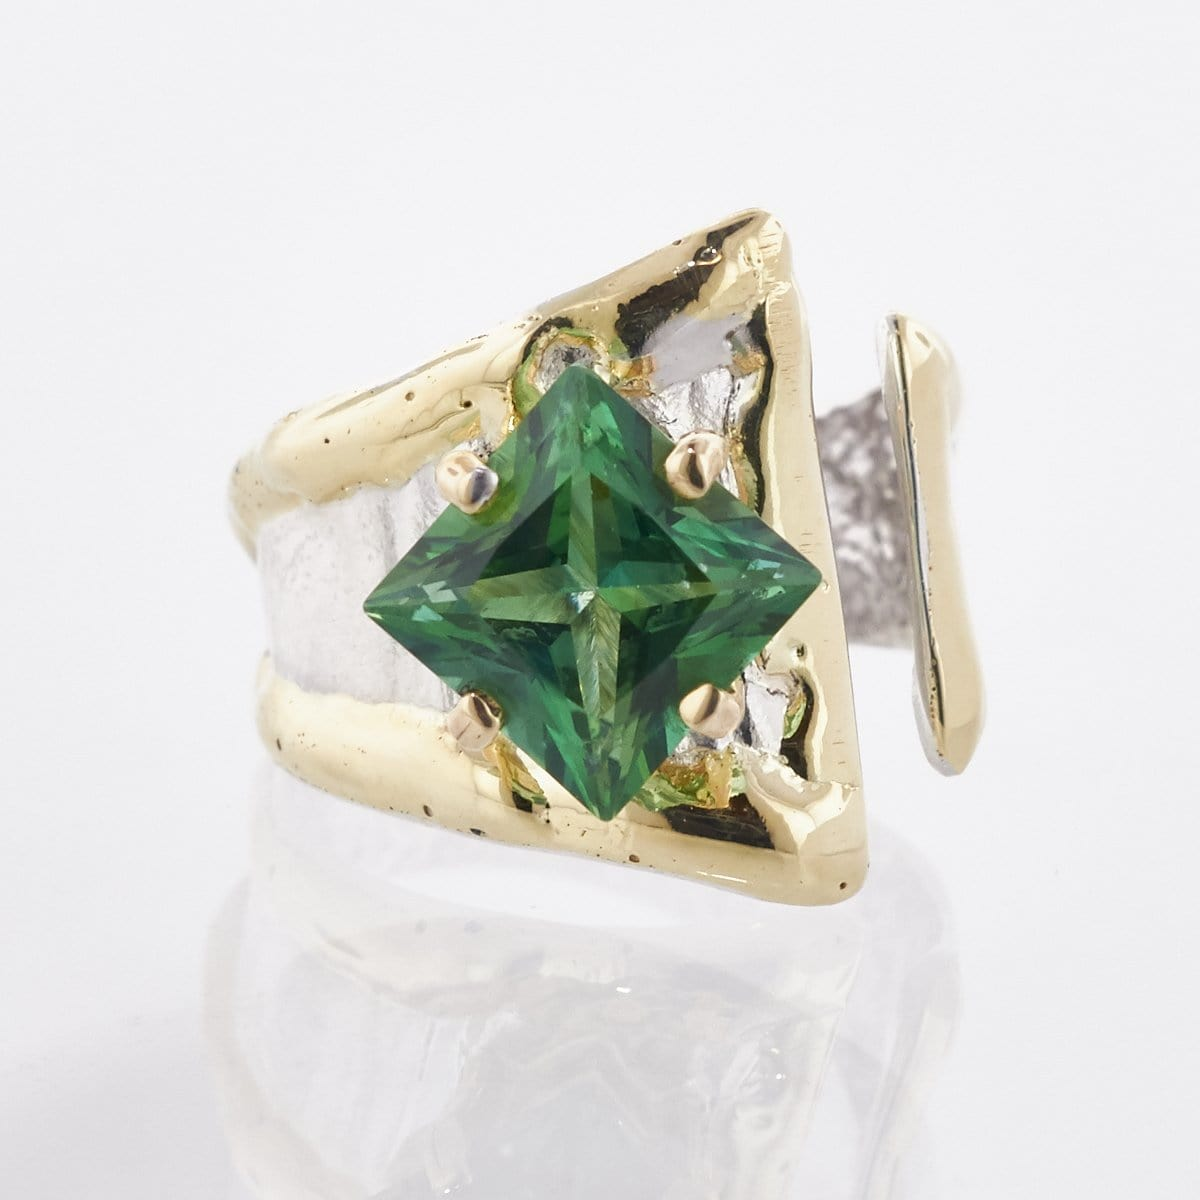 14K Gold & Crystalline Silver Rainforest Green Topaz Ring - 33266-Fusion Designs-Renee Taylor Gallery